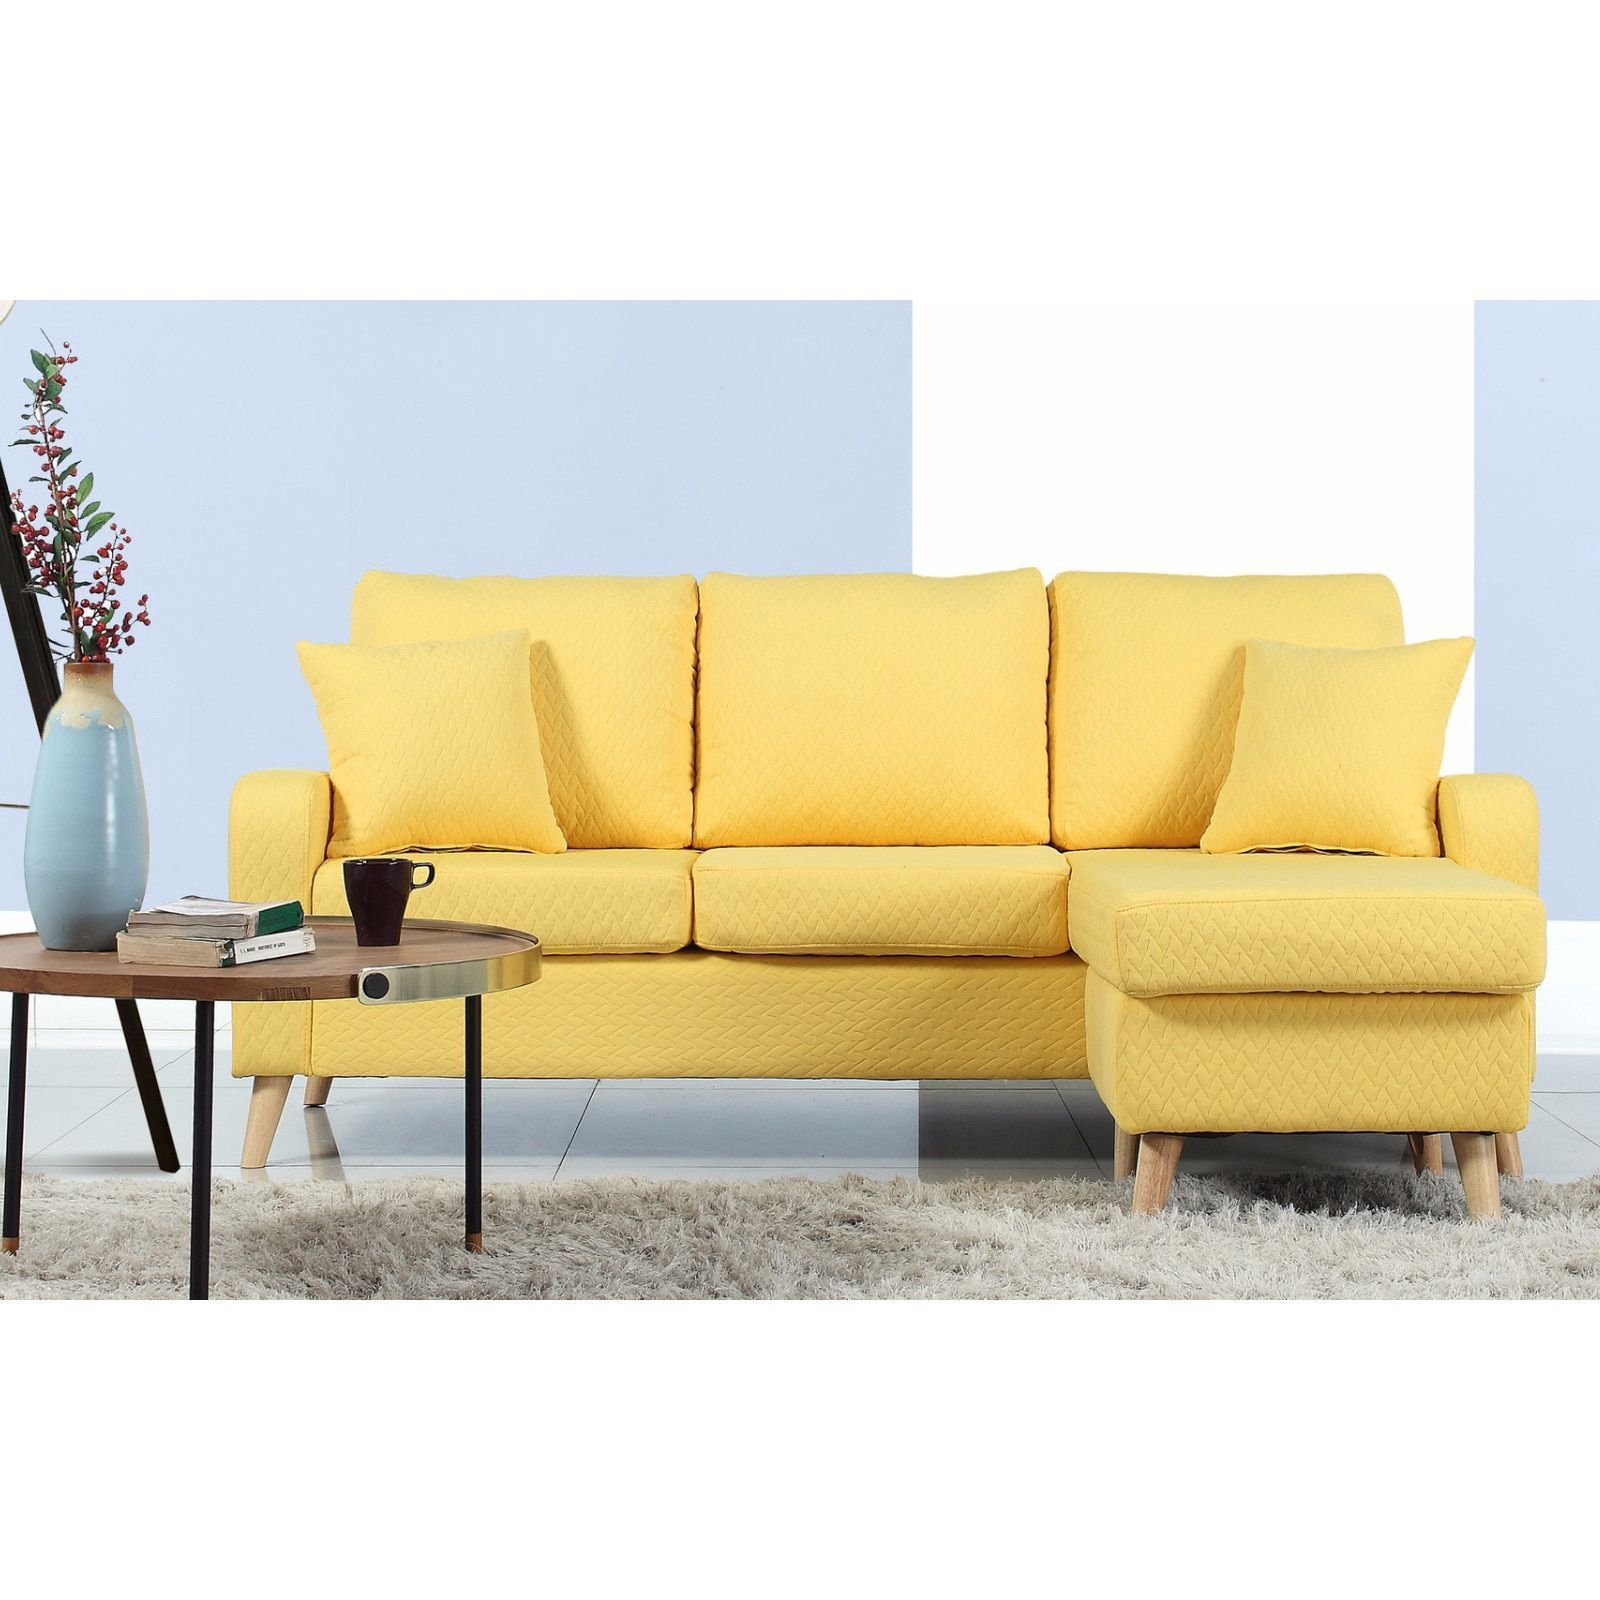 Remarkable Madison Mid Century Modern Small Space Sectional Sofa With Machost Co Dining Chair Design Ideas Machostcouk